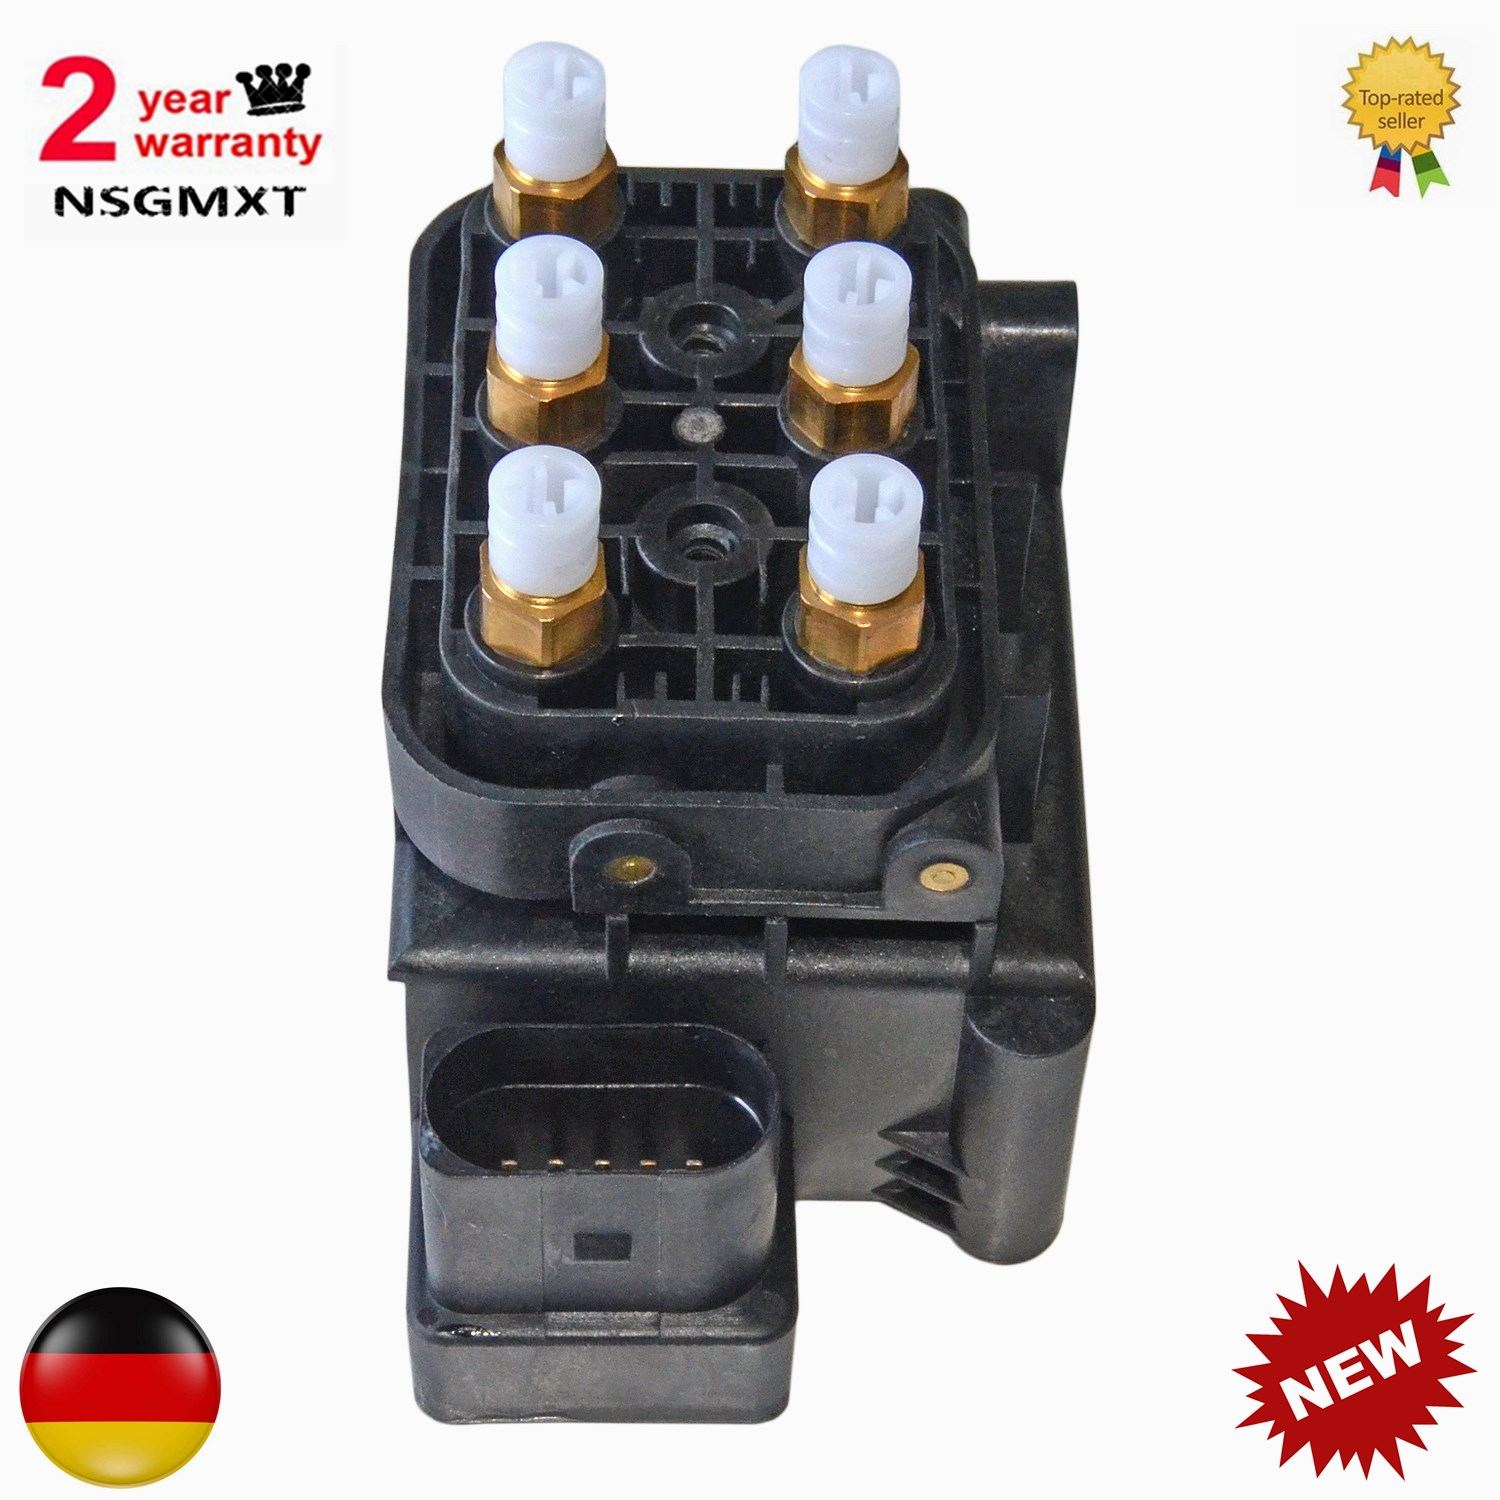 AP01 New Valve Block Air Suspension Air Supply For Audi Allroad A6 C6  Quattro A8 D3  S8 D3  4F0616013  4Z7 616 013  4Z7616013